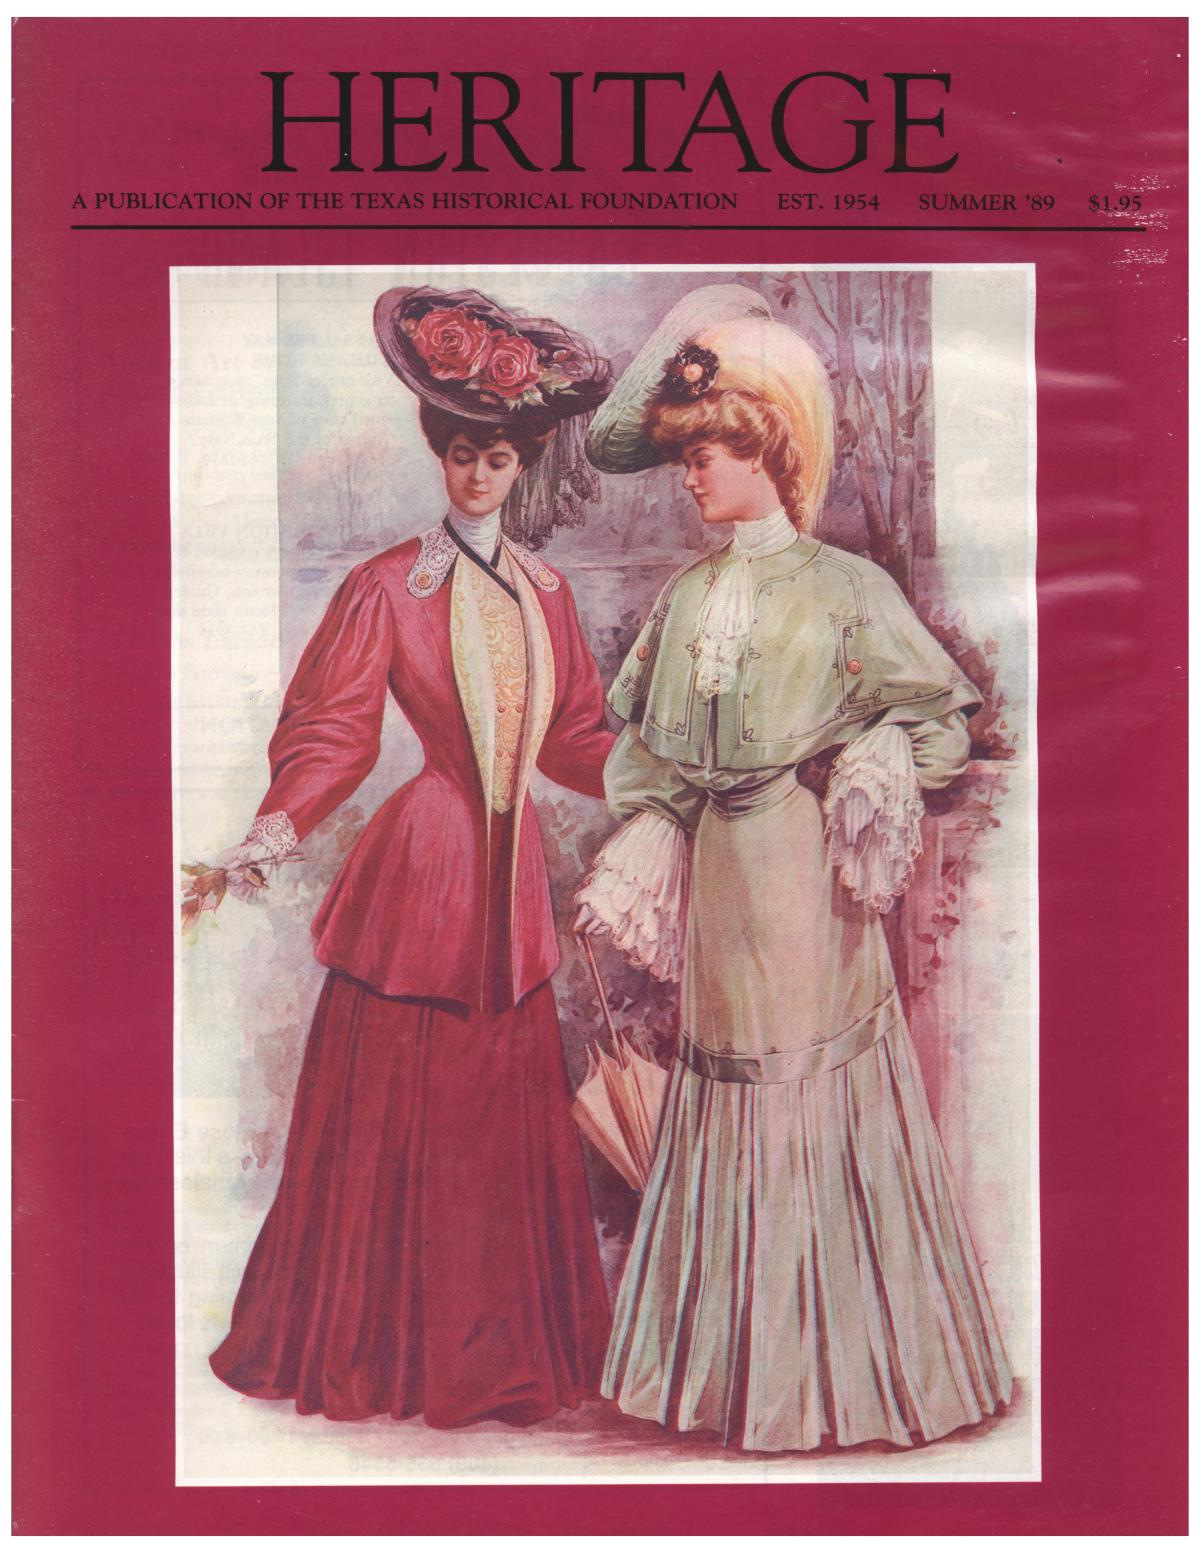 Heritage, Volume 7, Number 3, Summer 1989                                                                                                      Front Cover